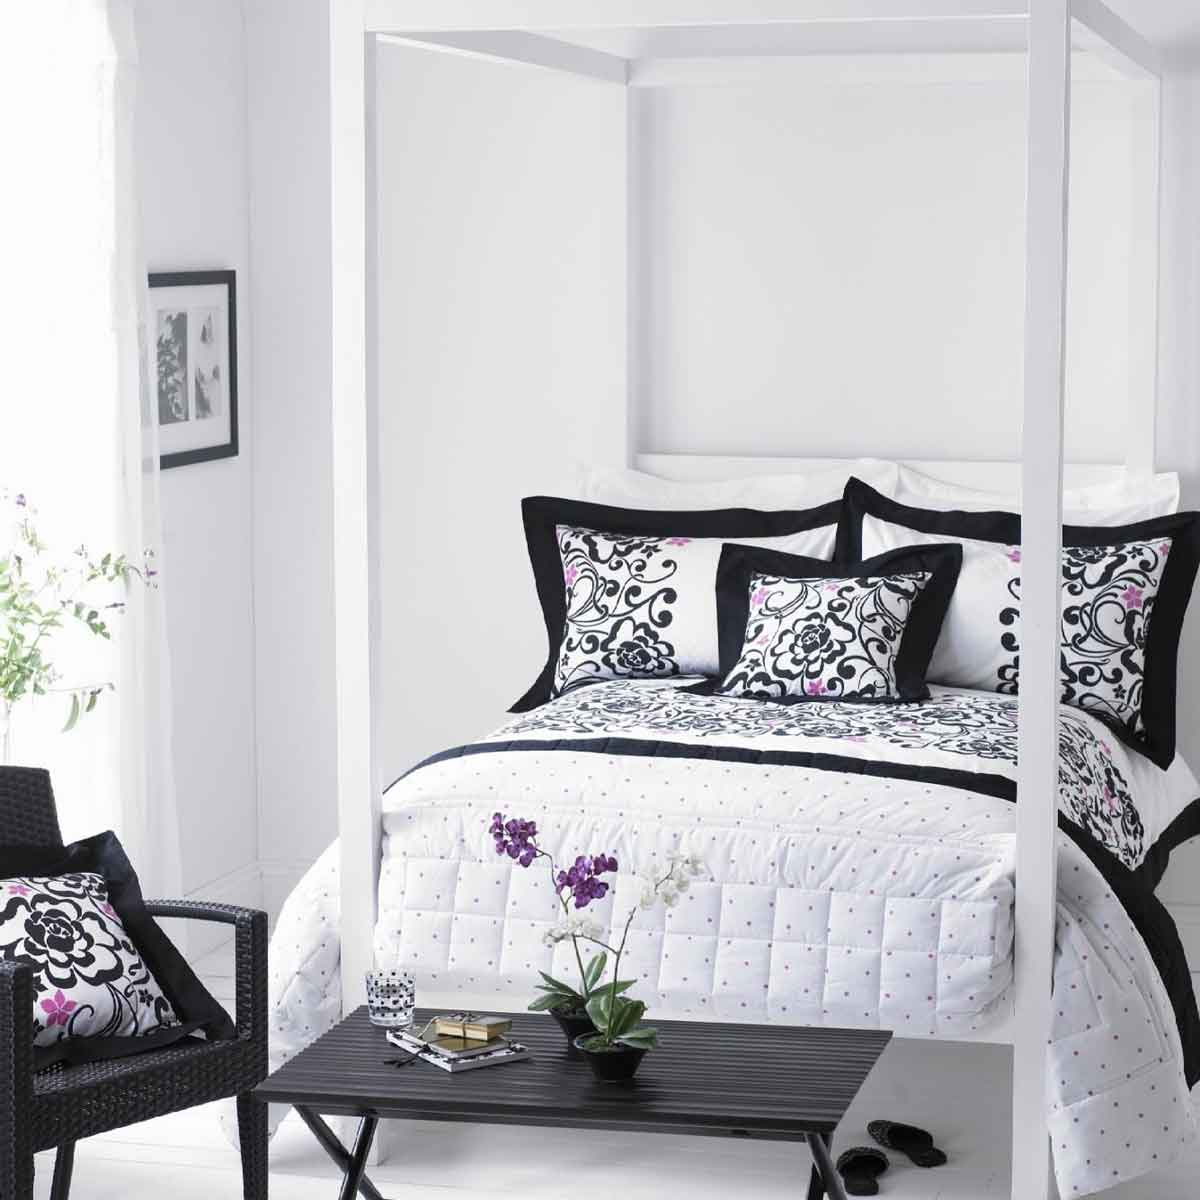 white small bedroom decorating ideas images 017